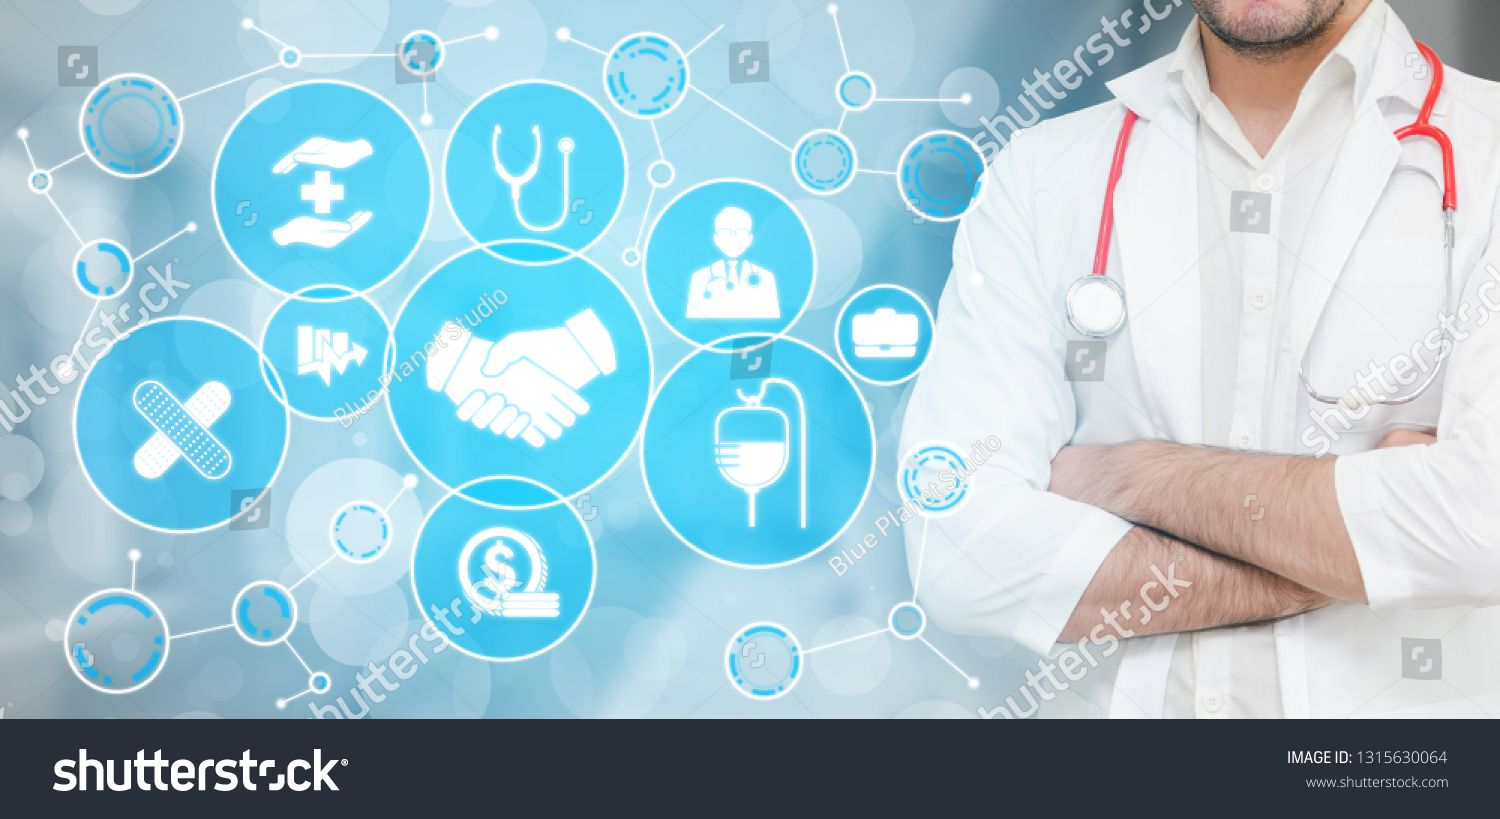 Medical Healthcare Concept Doctor In Hospital With Digital Medical Icons Graphic Banner Showing Symbol Of Medicine Medical Medical Icon Health Care Medical